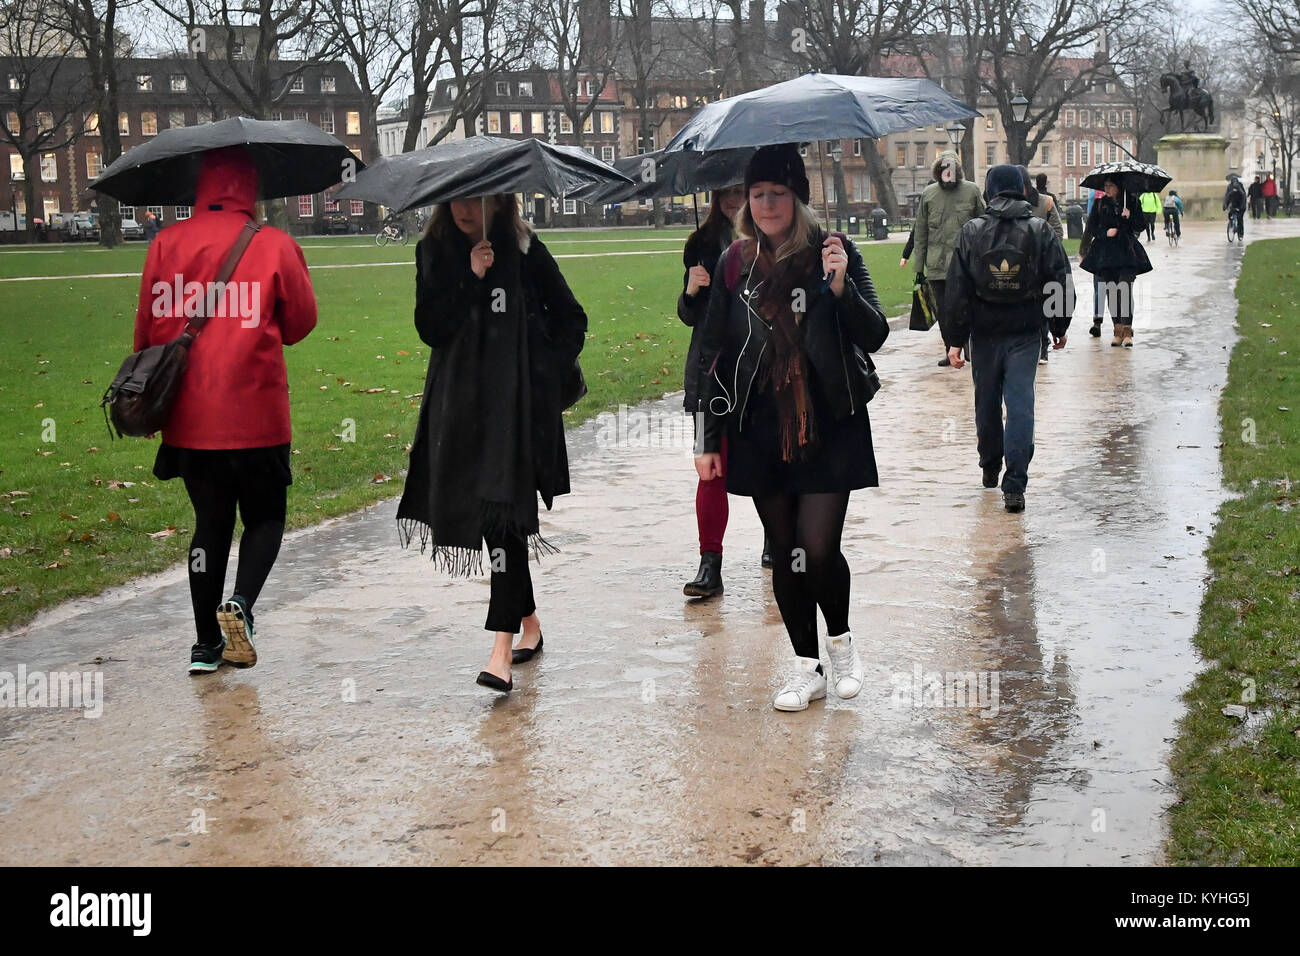 People shelter under umbrellas in pouring rain as they commute to work in Bristol city centre, on what is claimed - Stock Image